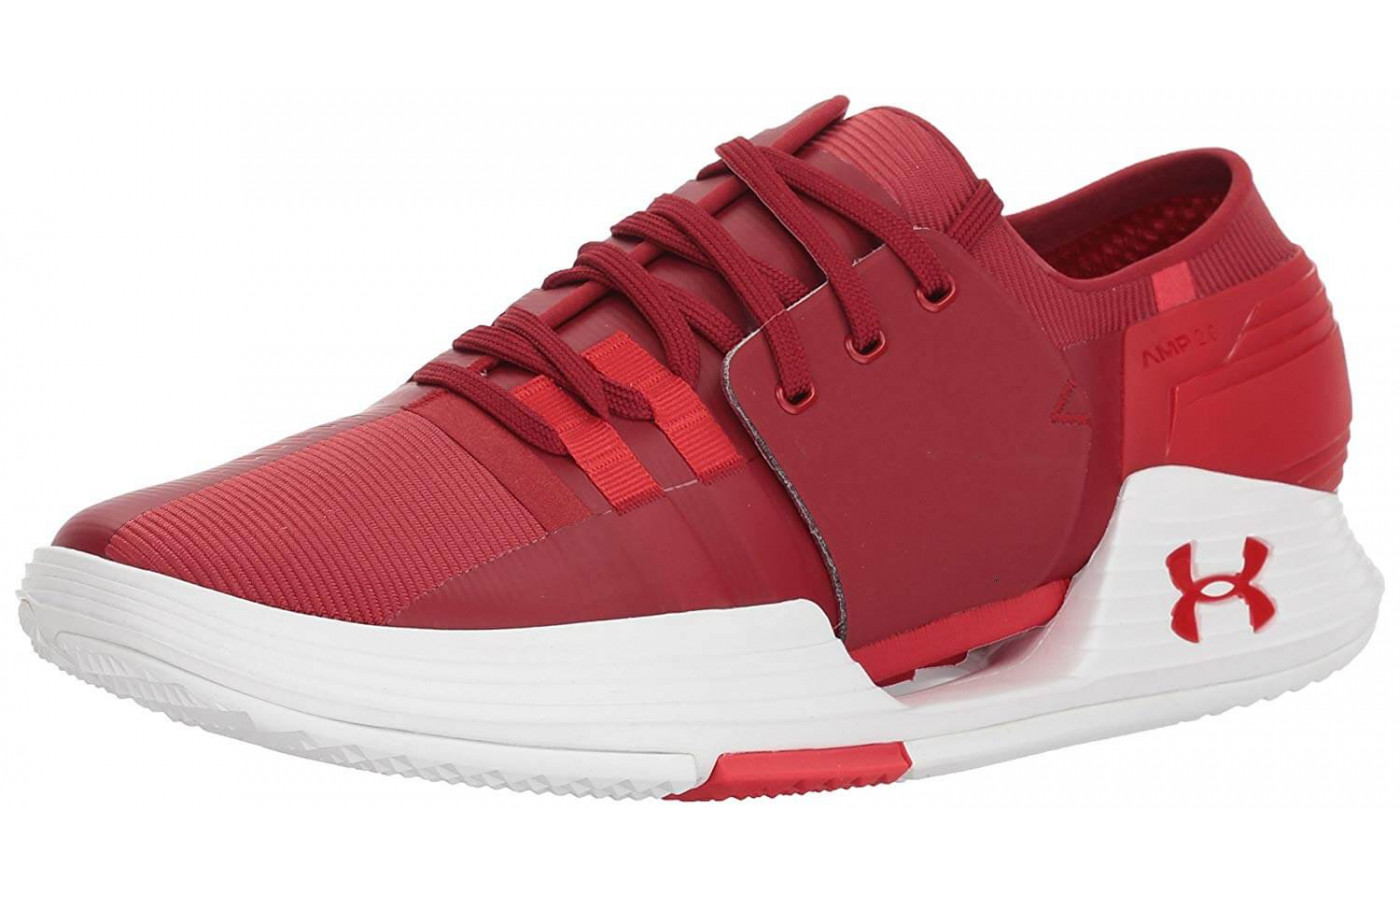 Under Armour Speedform Amp 2.0 Angel View